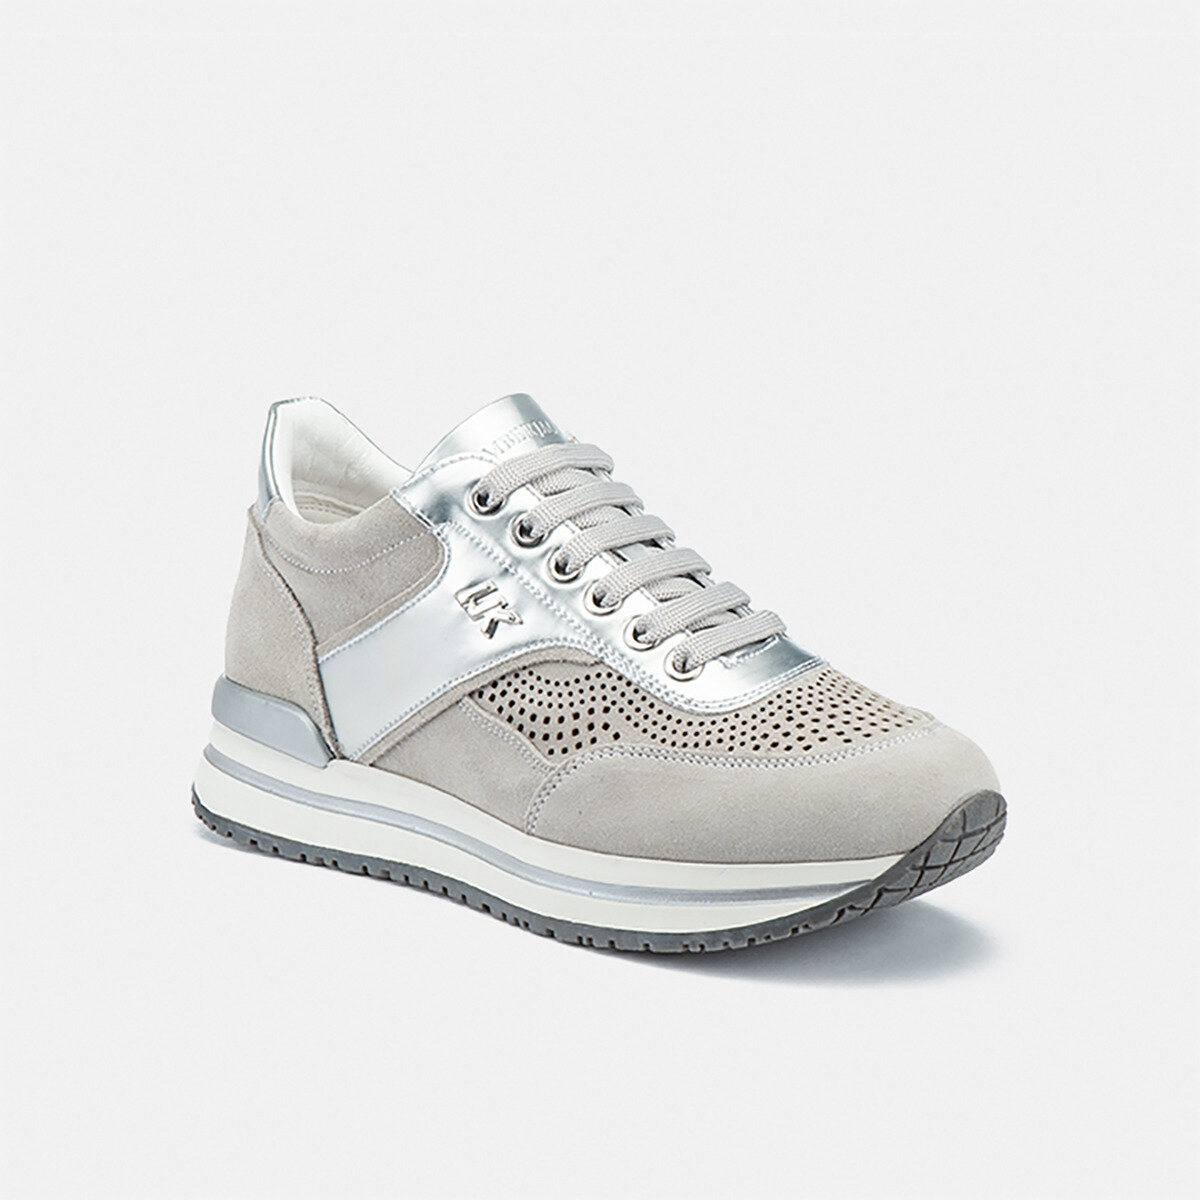 LIKE LT GREY Woman Sneakers